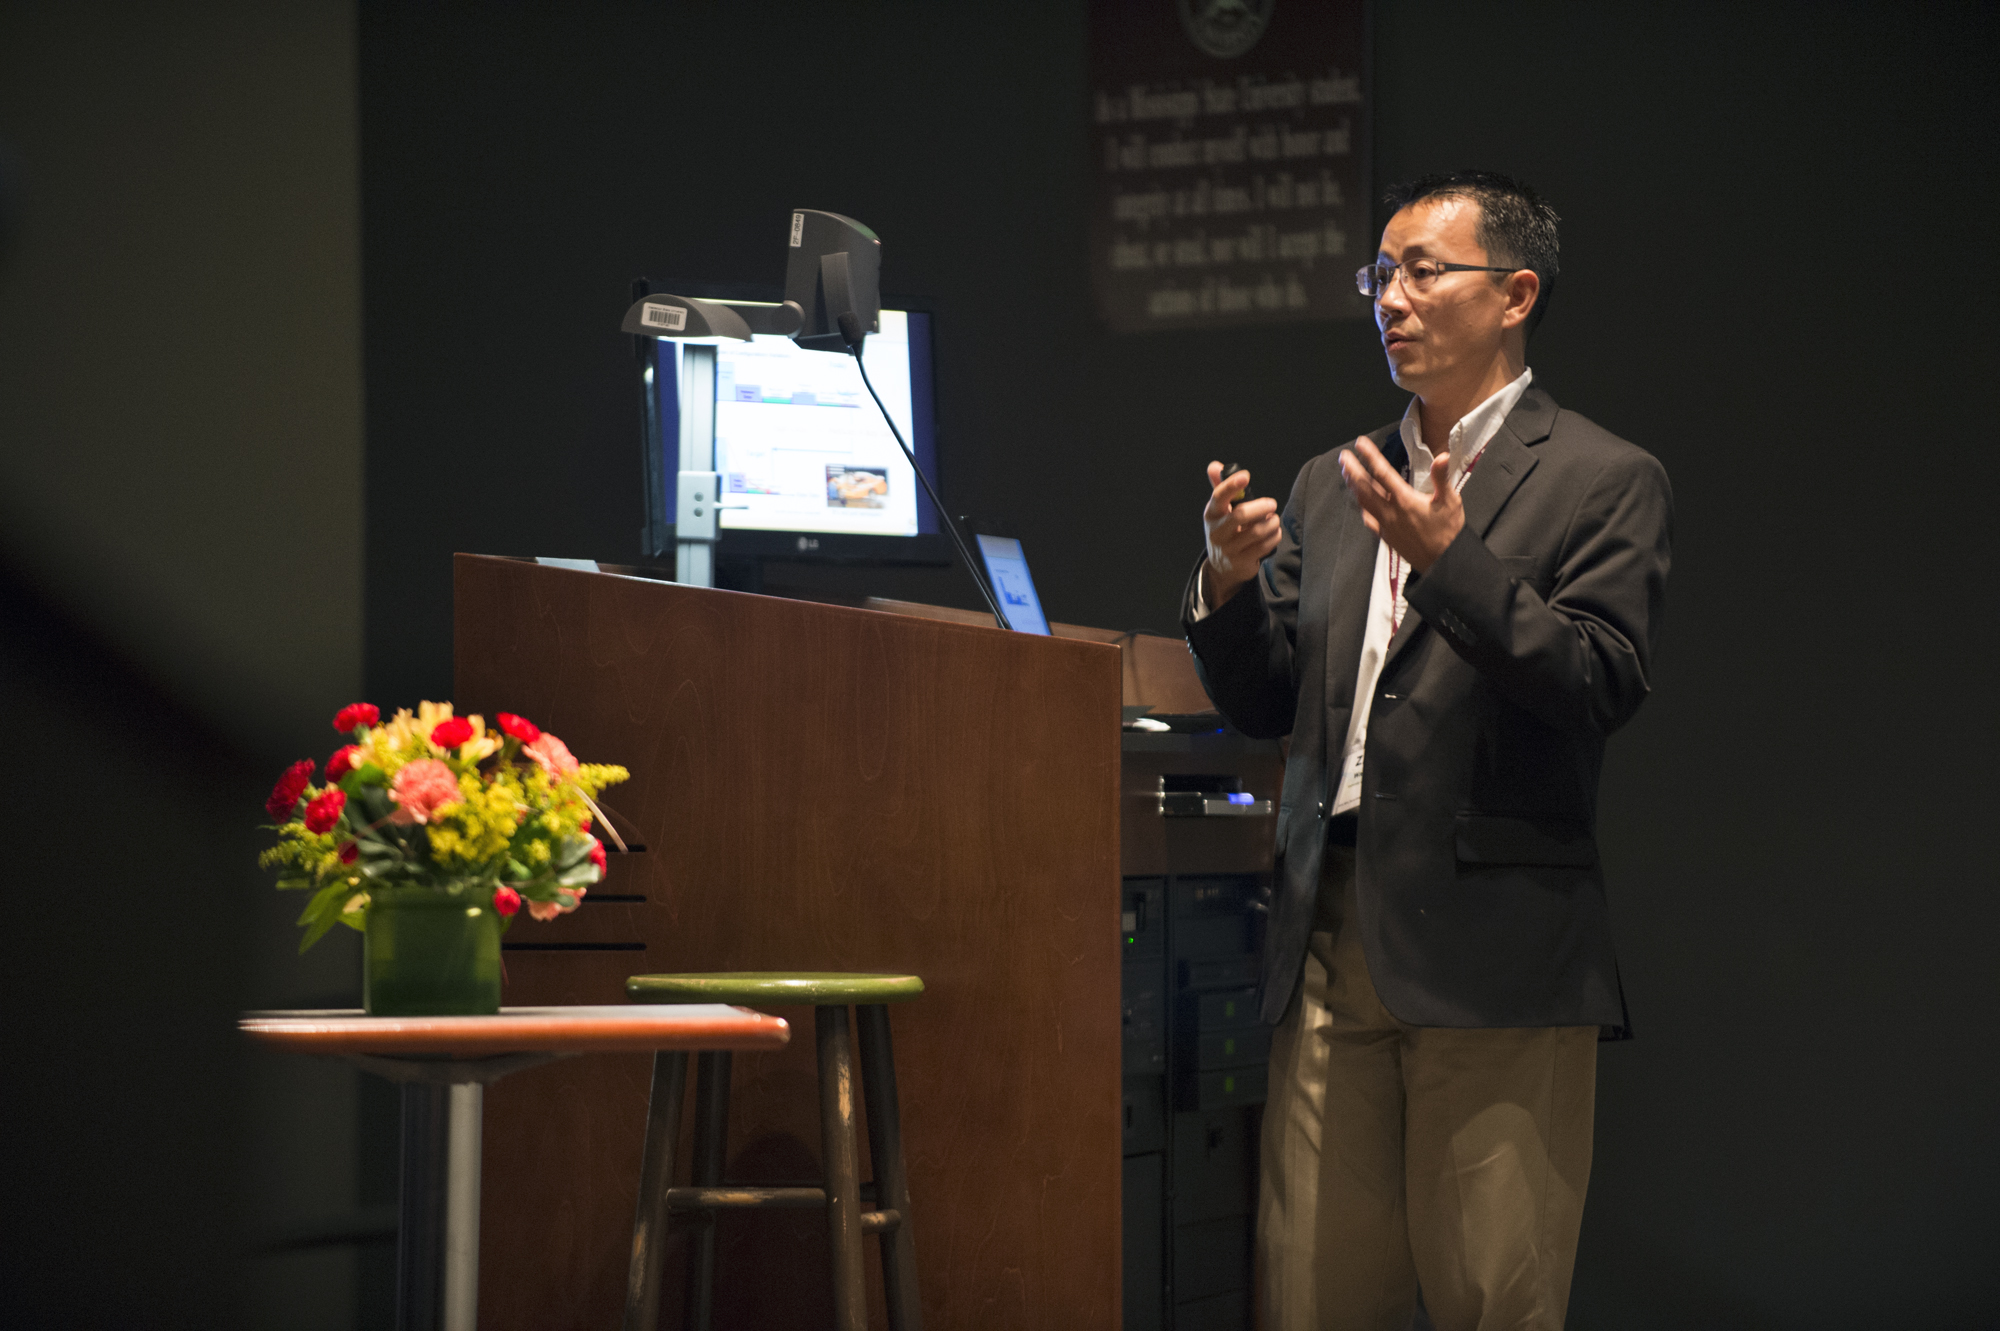 Zhi J. Wang, aerospace engineer from the University of Kansas, presented a paper at Mississippi State University's recent Conference on Differential Equations & Computational Simulations, an interdisciplinary conference for researchers in mathematics, engineering and other scientific fields.